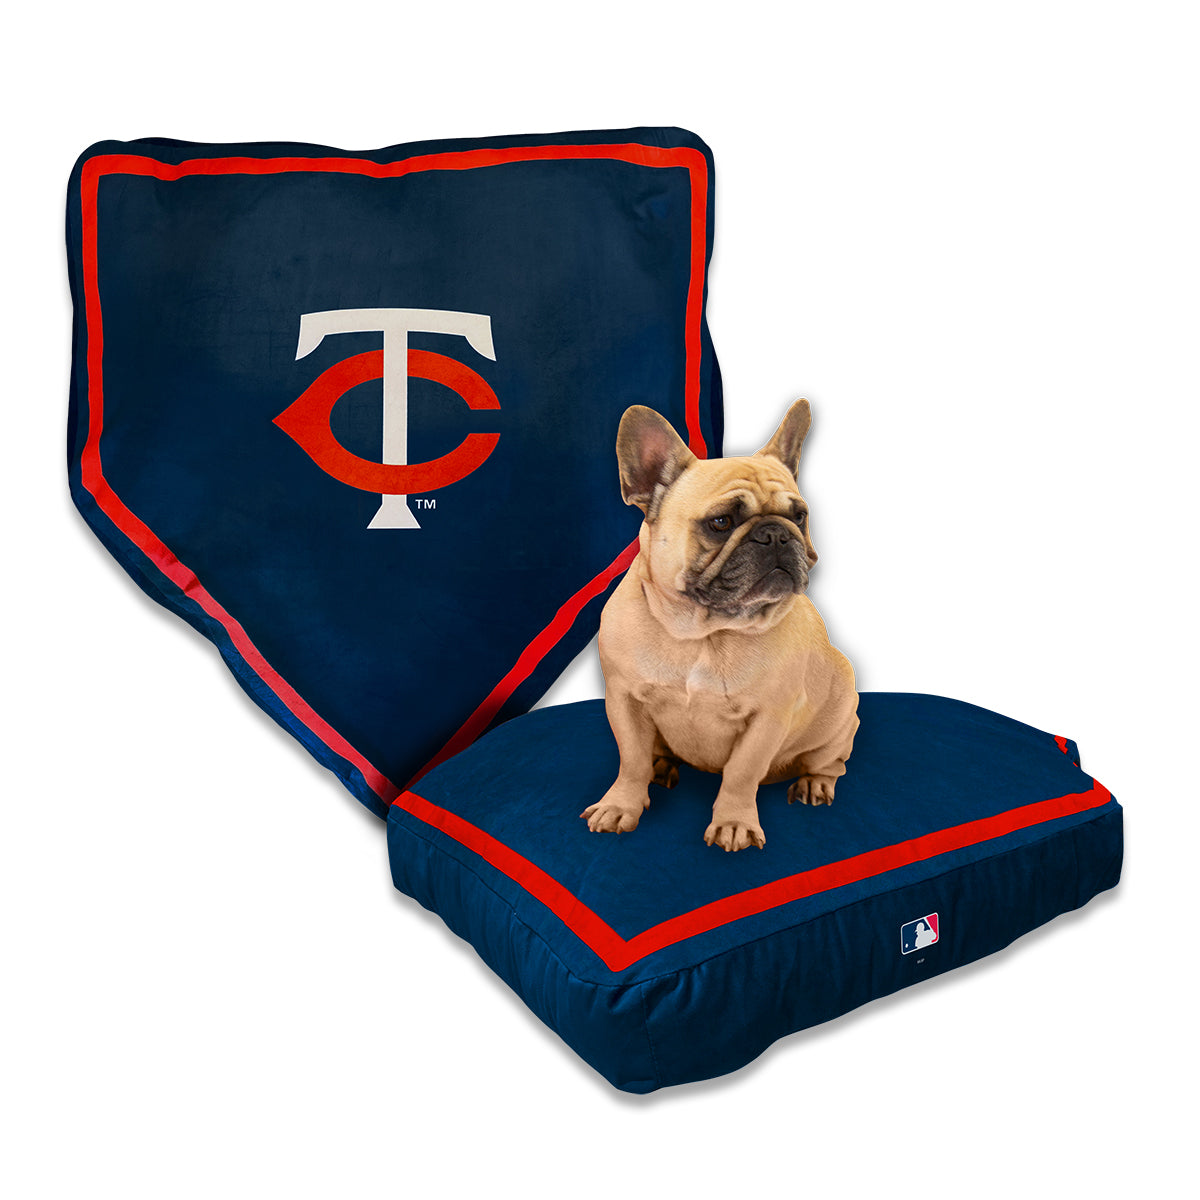 Minnesota Twins Home Plate Bed by Nap Cap